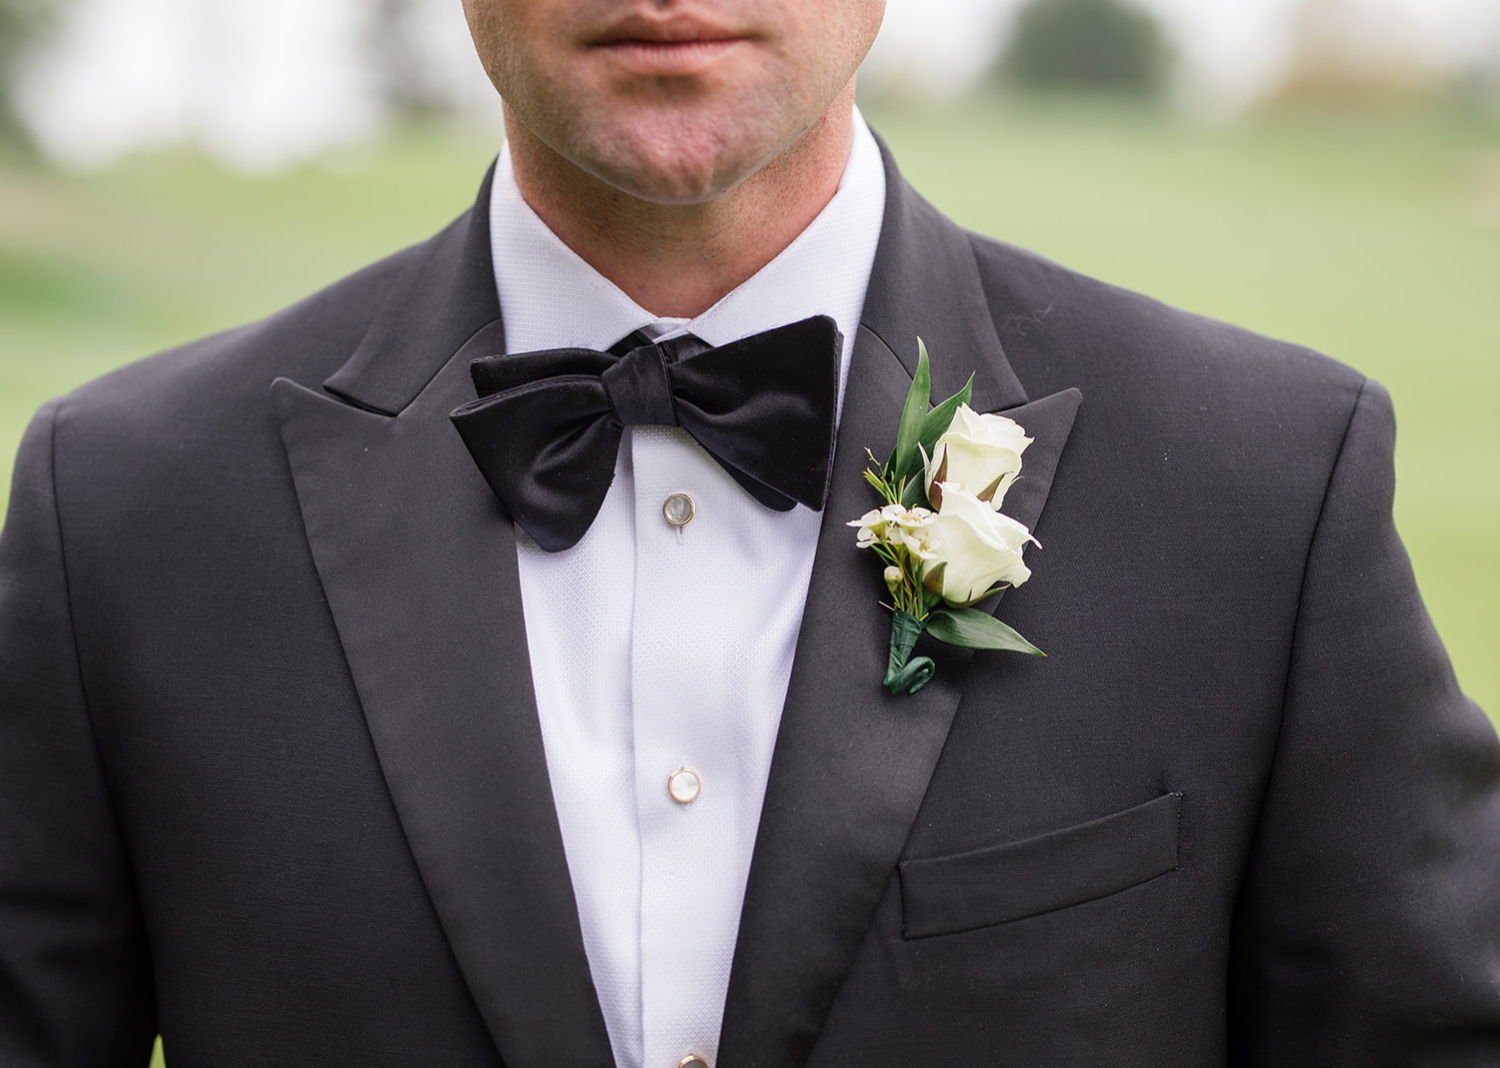 close up shot of the groom's bow tie and boutonniere